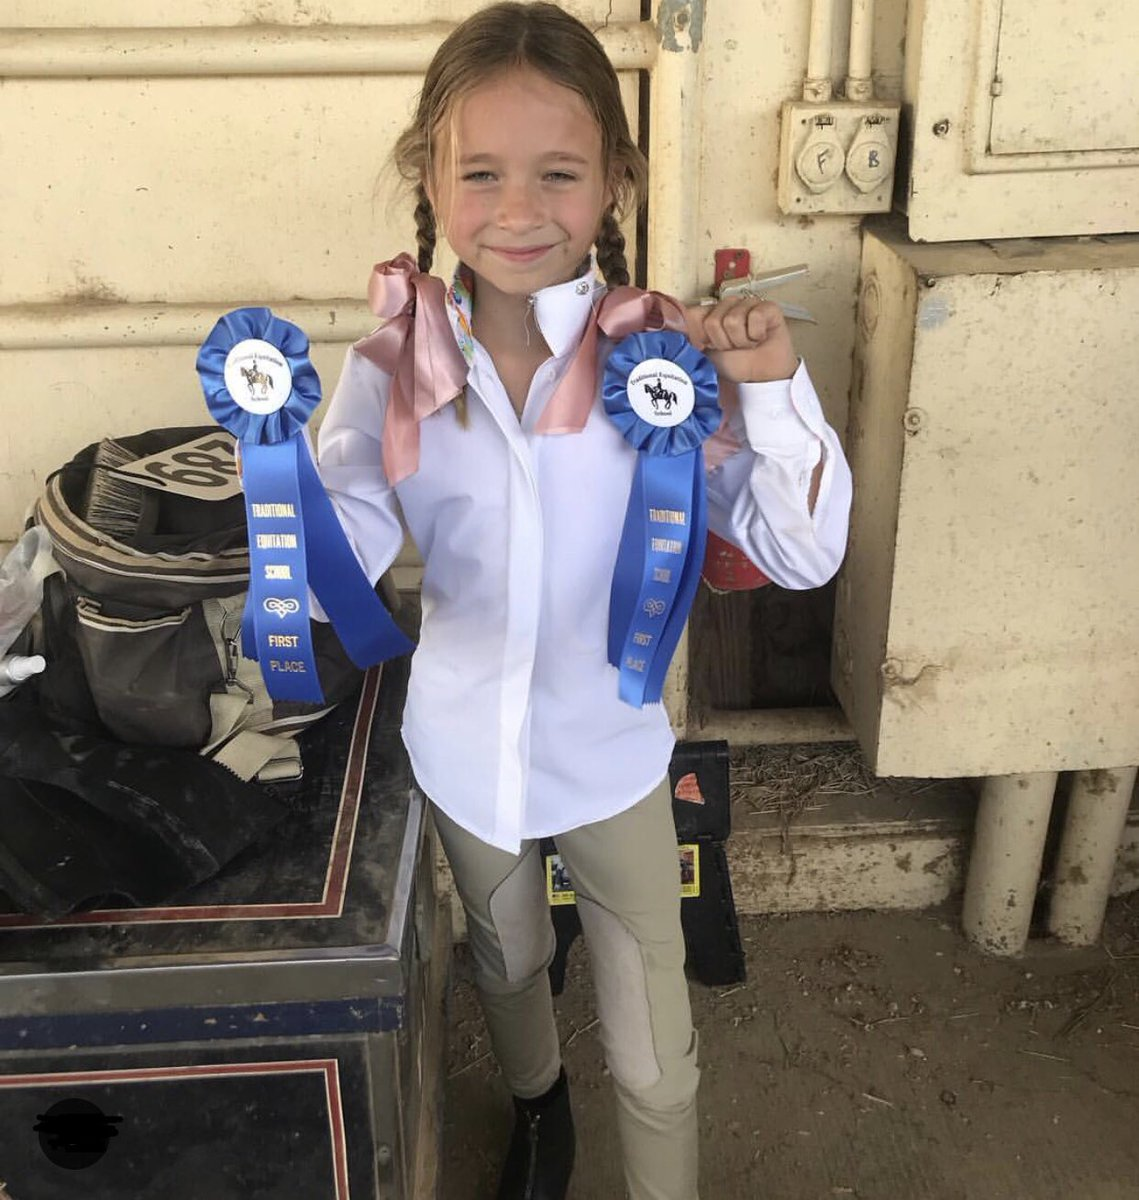 Congratulations to our little equestrian Grace, who won two blue ribbons over the weekend! ???????????? #daddysgirl https://t.co/Aidx0naJY3